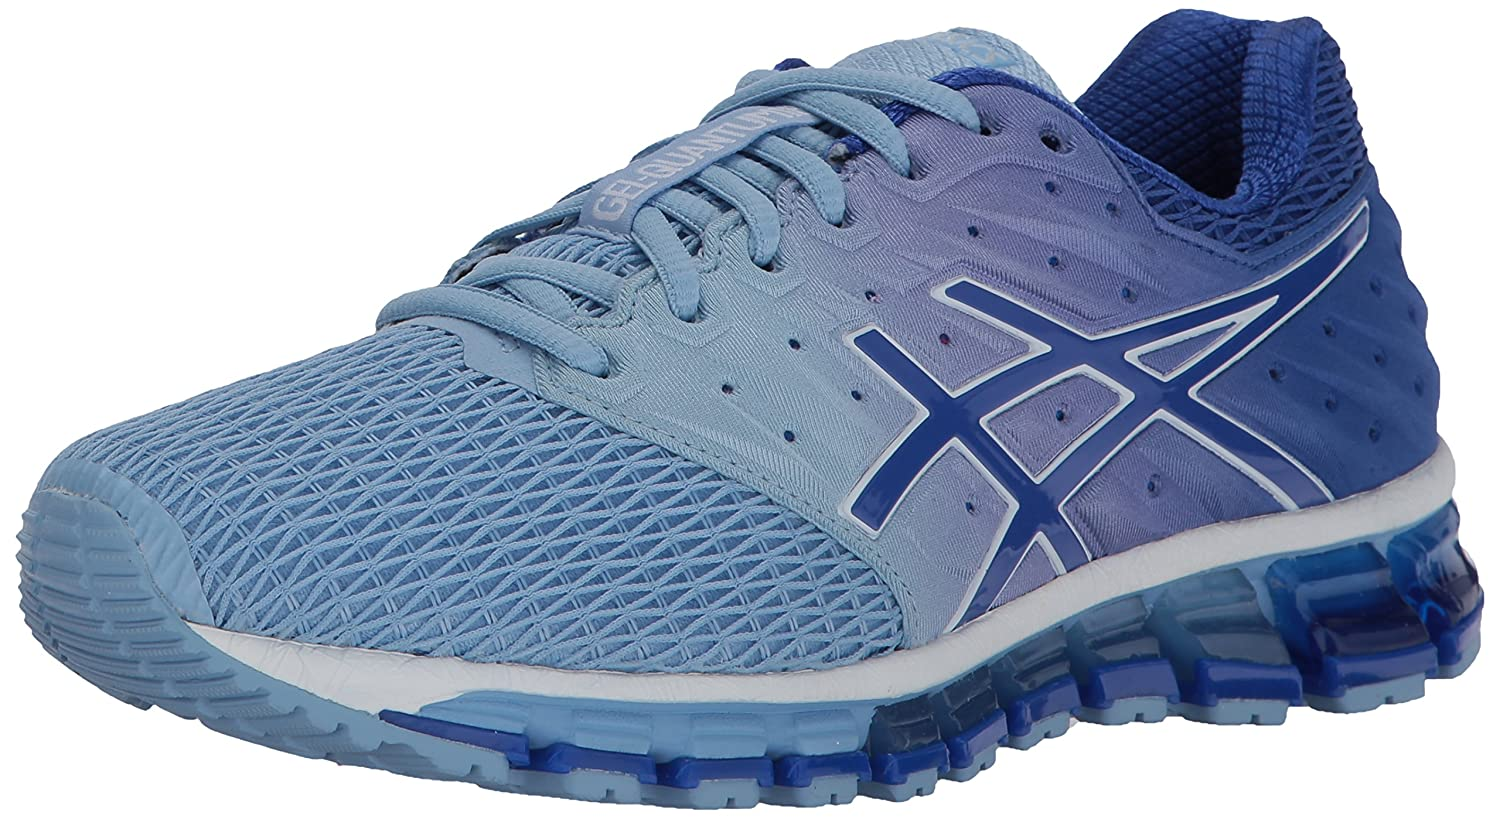 ASICS Women's Gel-Quantum 180 2 Running Shoe B01MQGFOB8 9.5 B(M) US|Airy Blue/Blue Purple/White